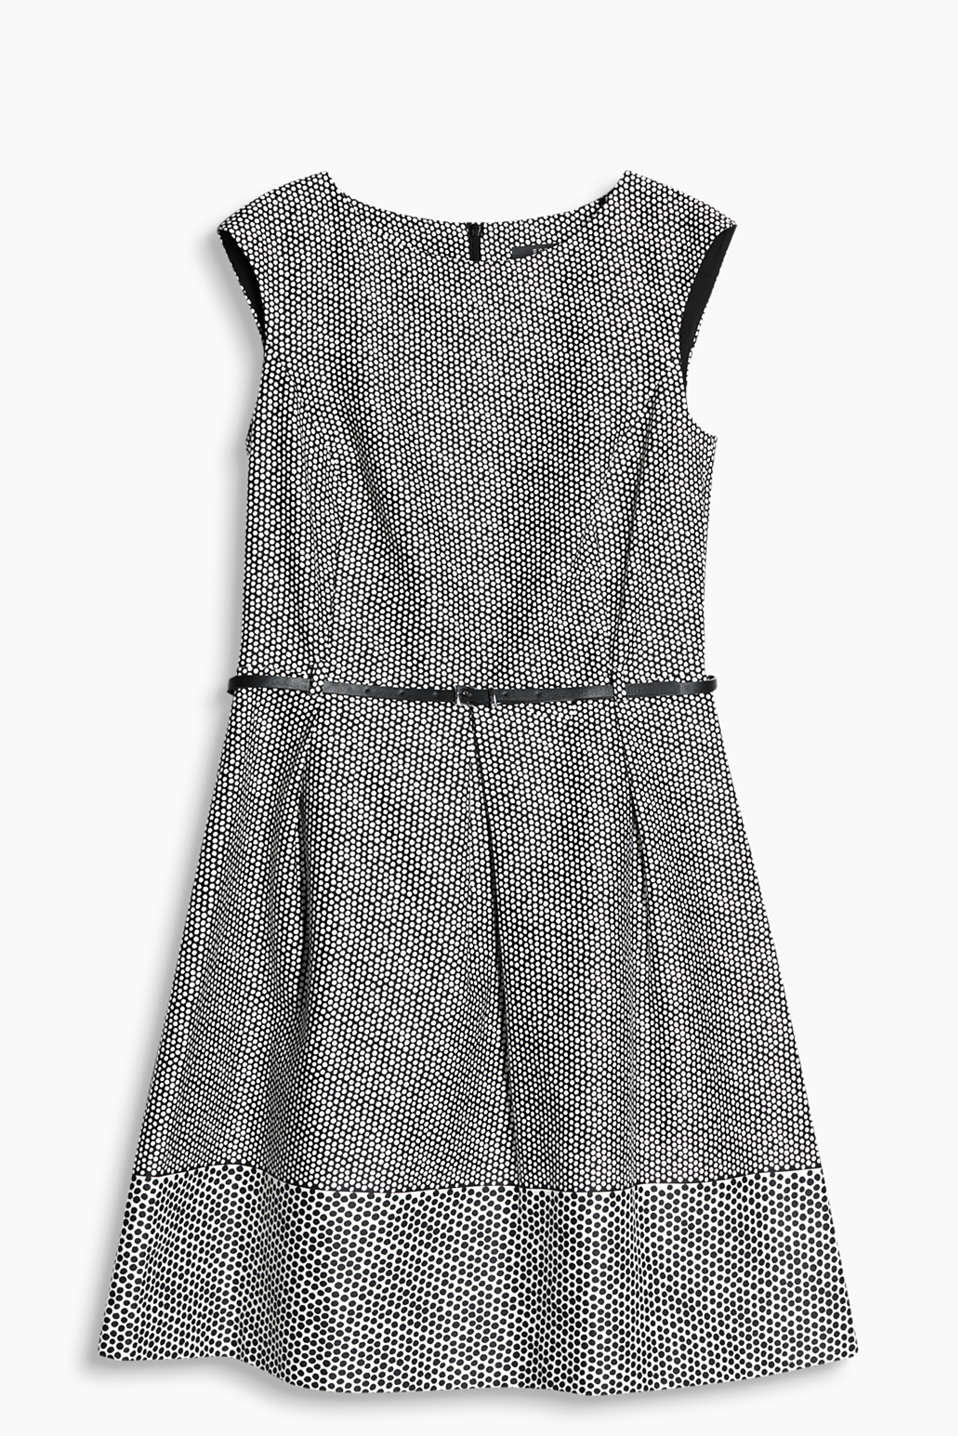 Stretch cotton dress with a modern, mixed polka dot pattern, narrow belt and pleated skirt